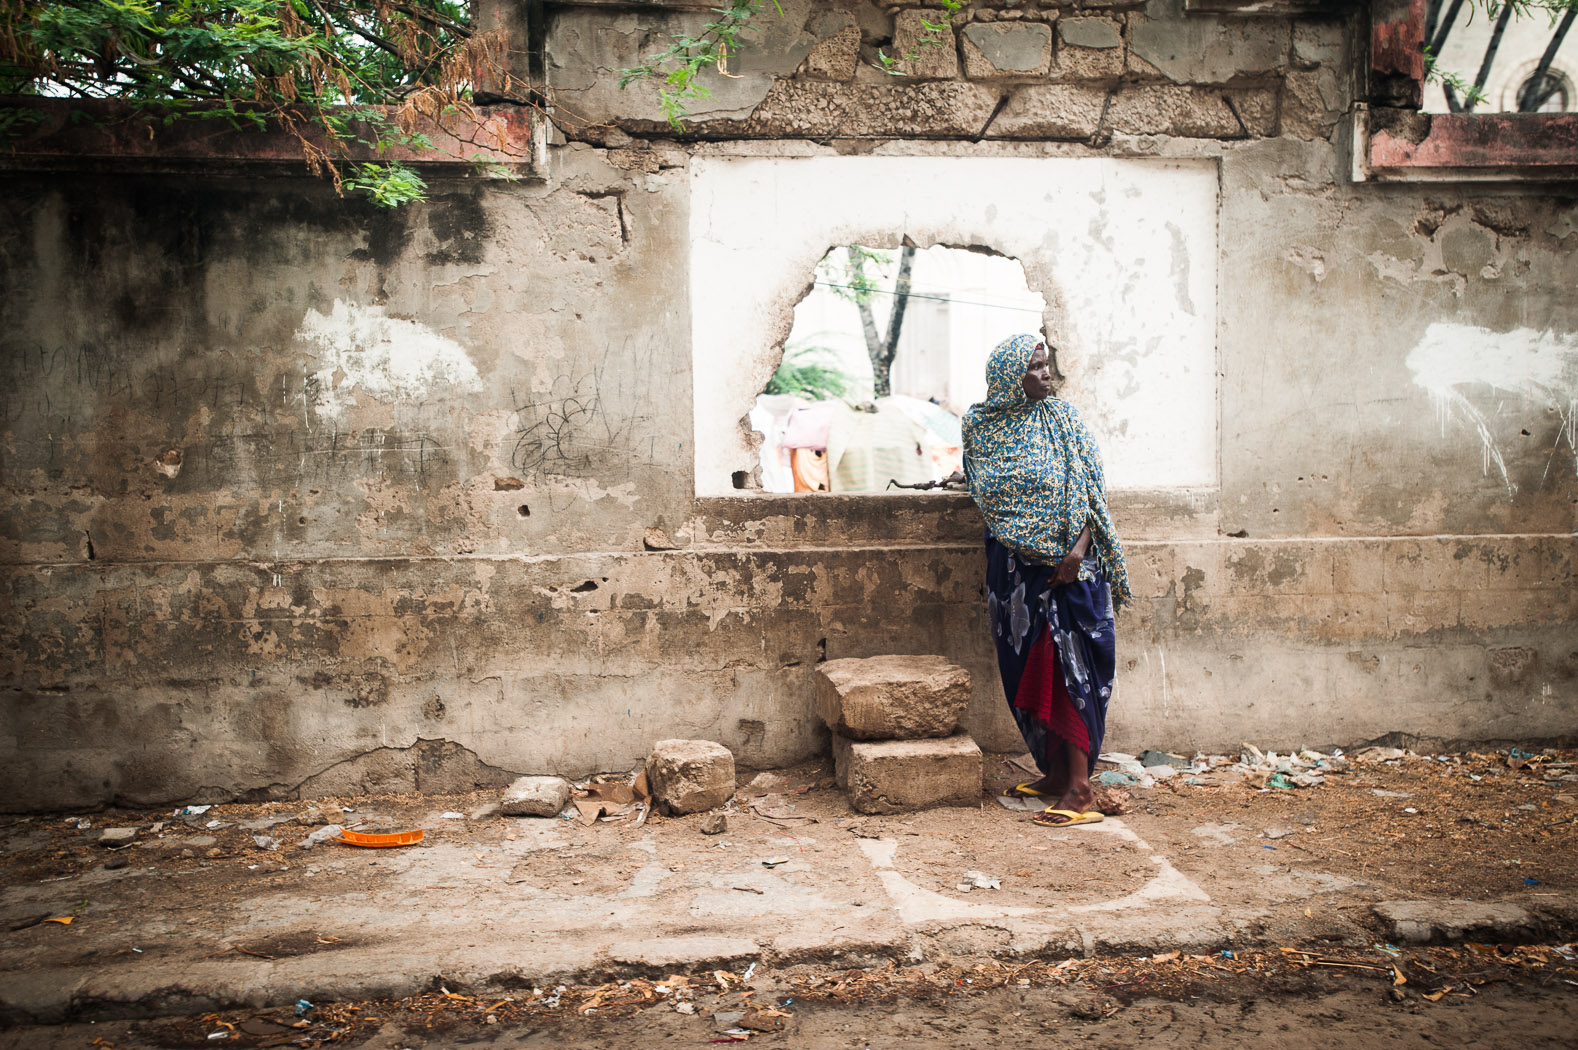 Following the drought of 2011, Mogadishu became host for thousands of internally displaced persons. Visible through the hole in this wall is one such camp, captured in May 2011.